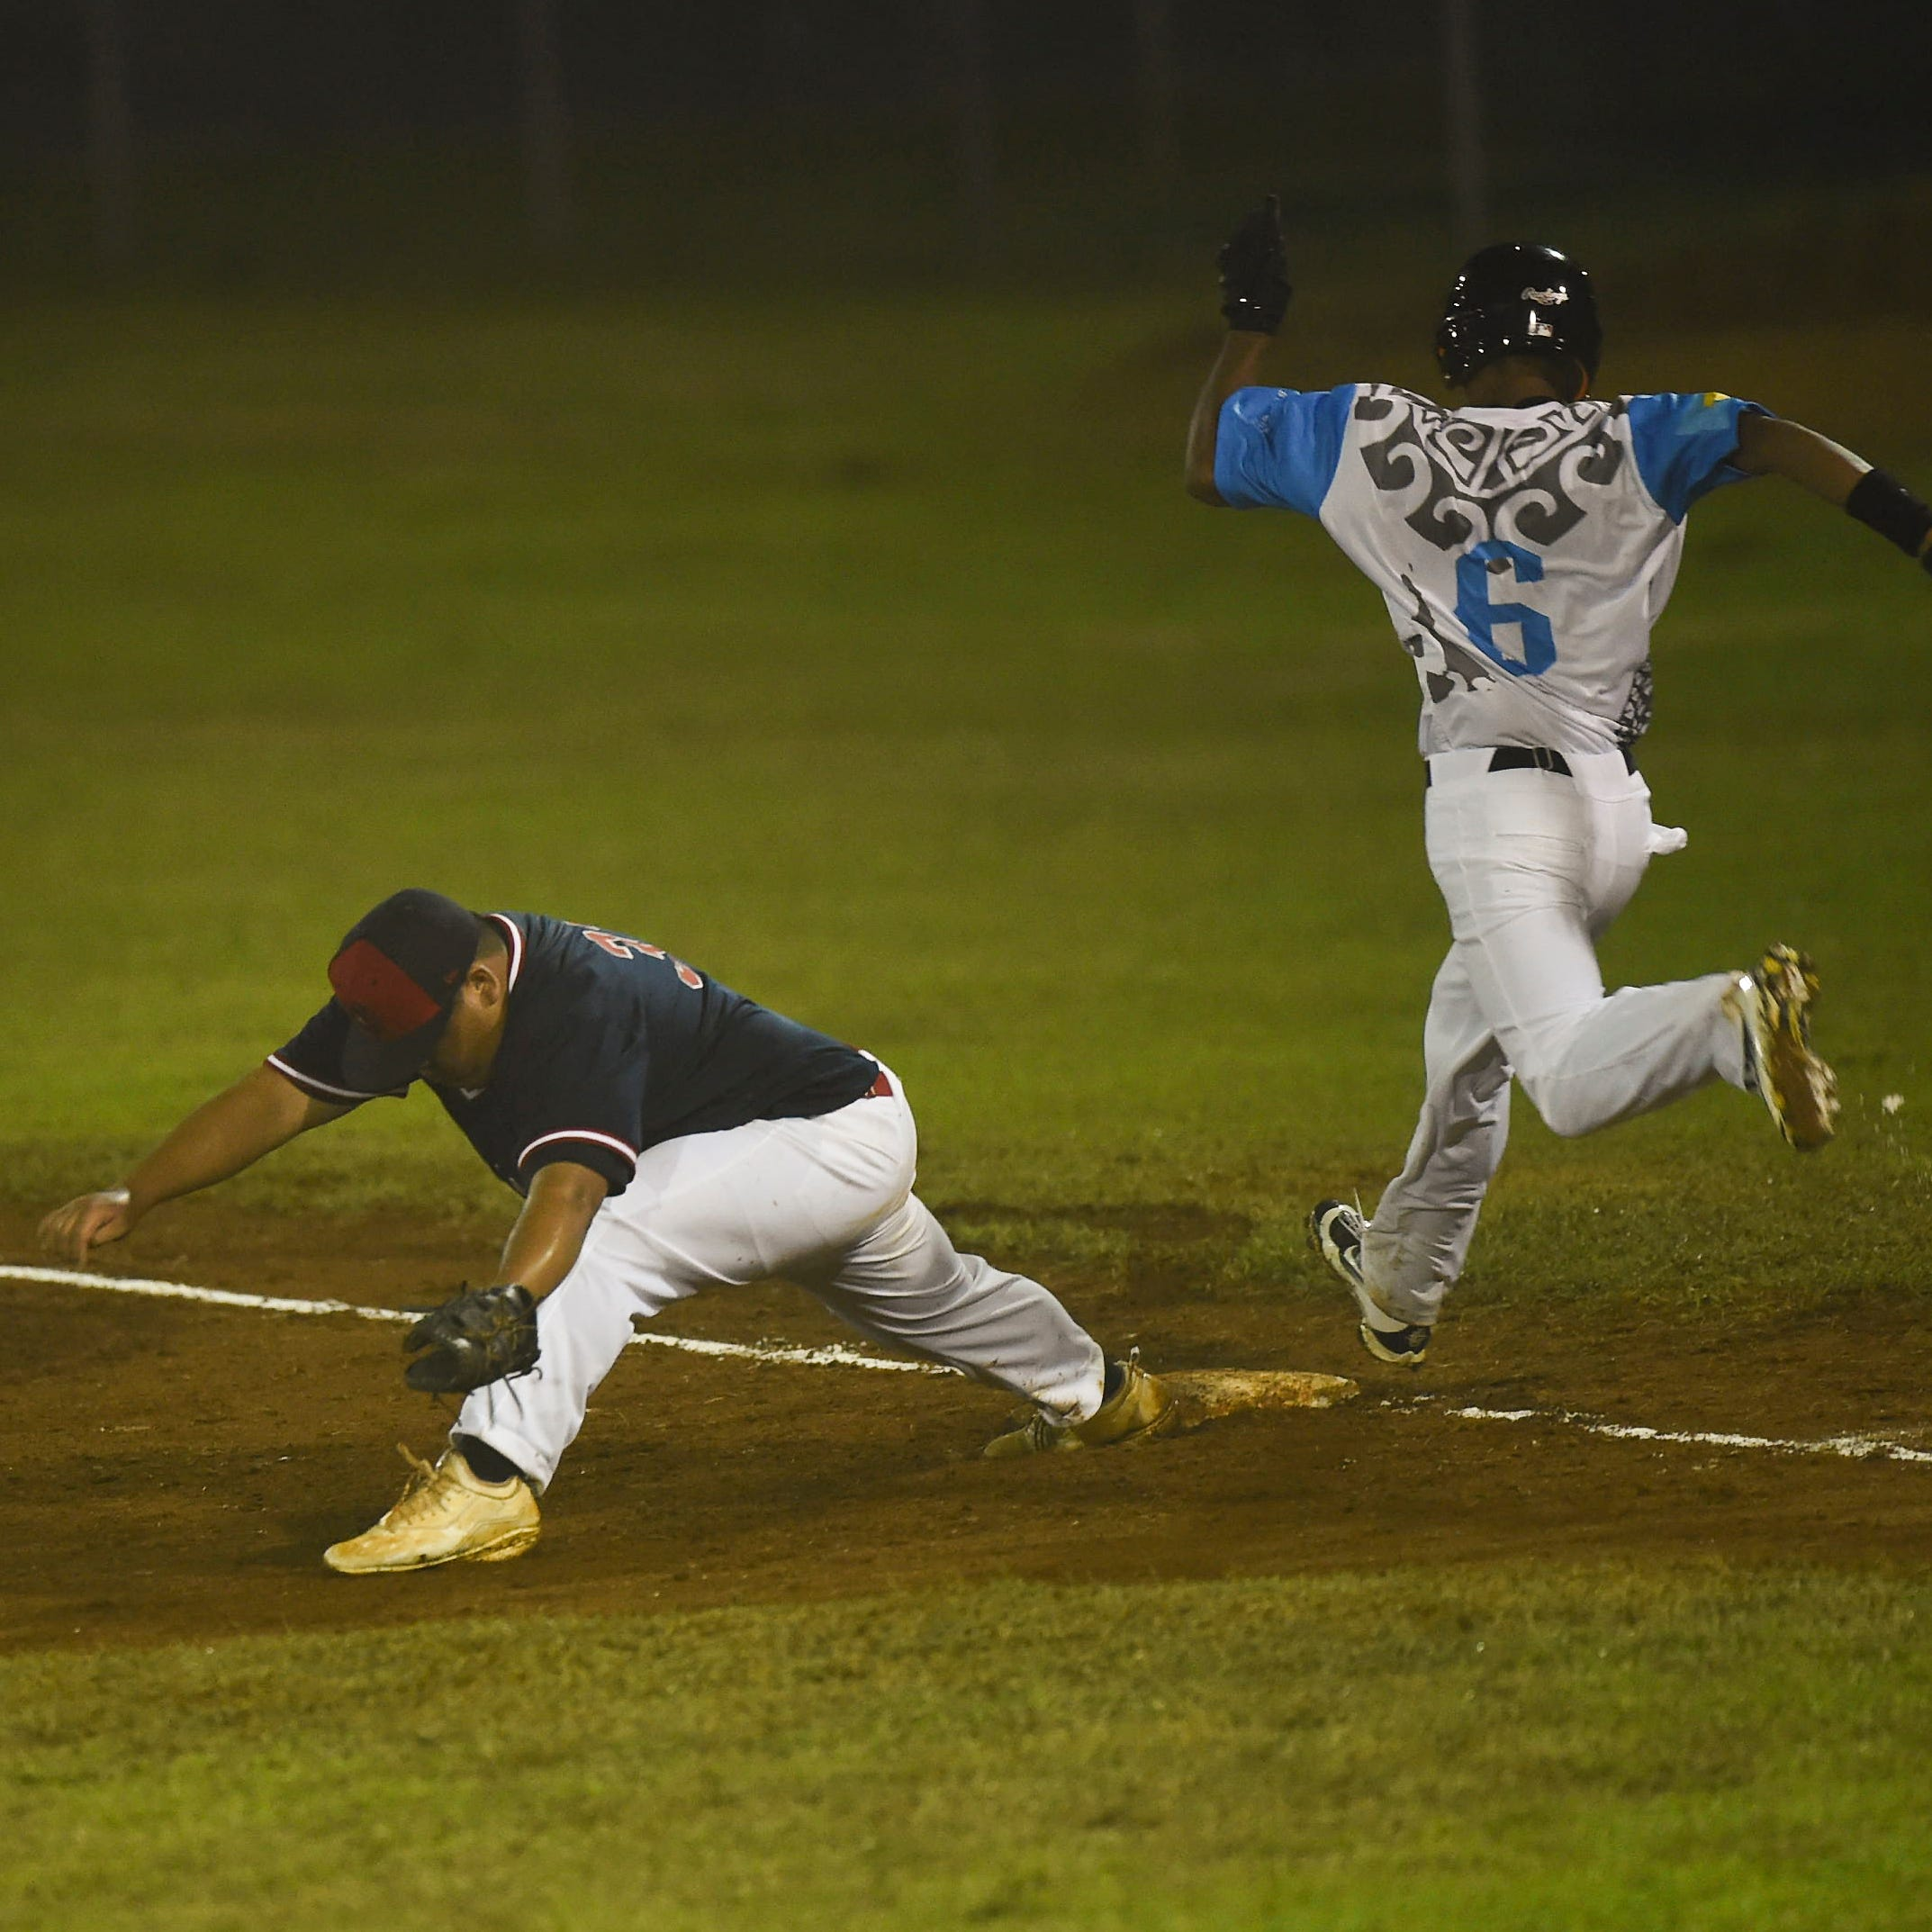 Palau leads Guam 1-0 in suspended contest